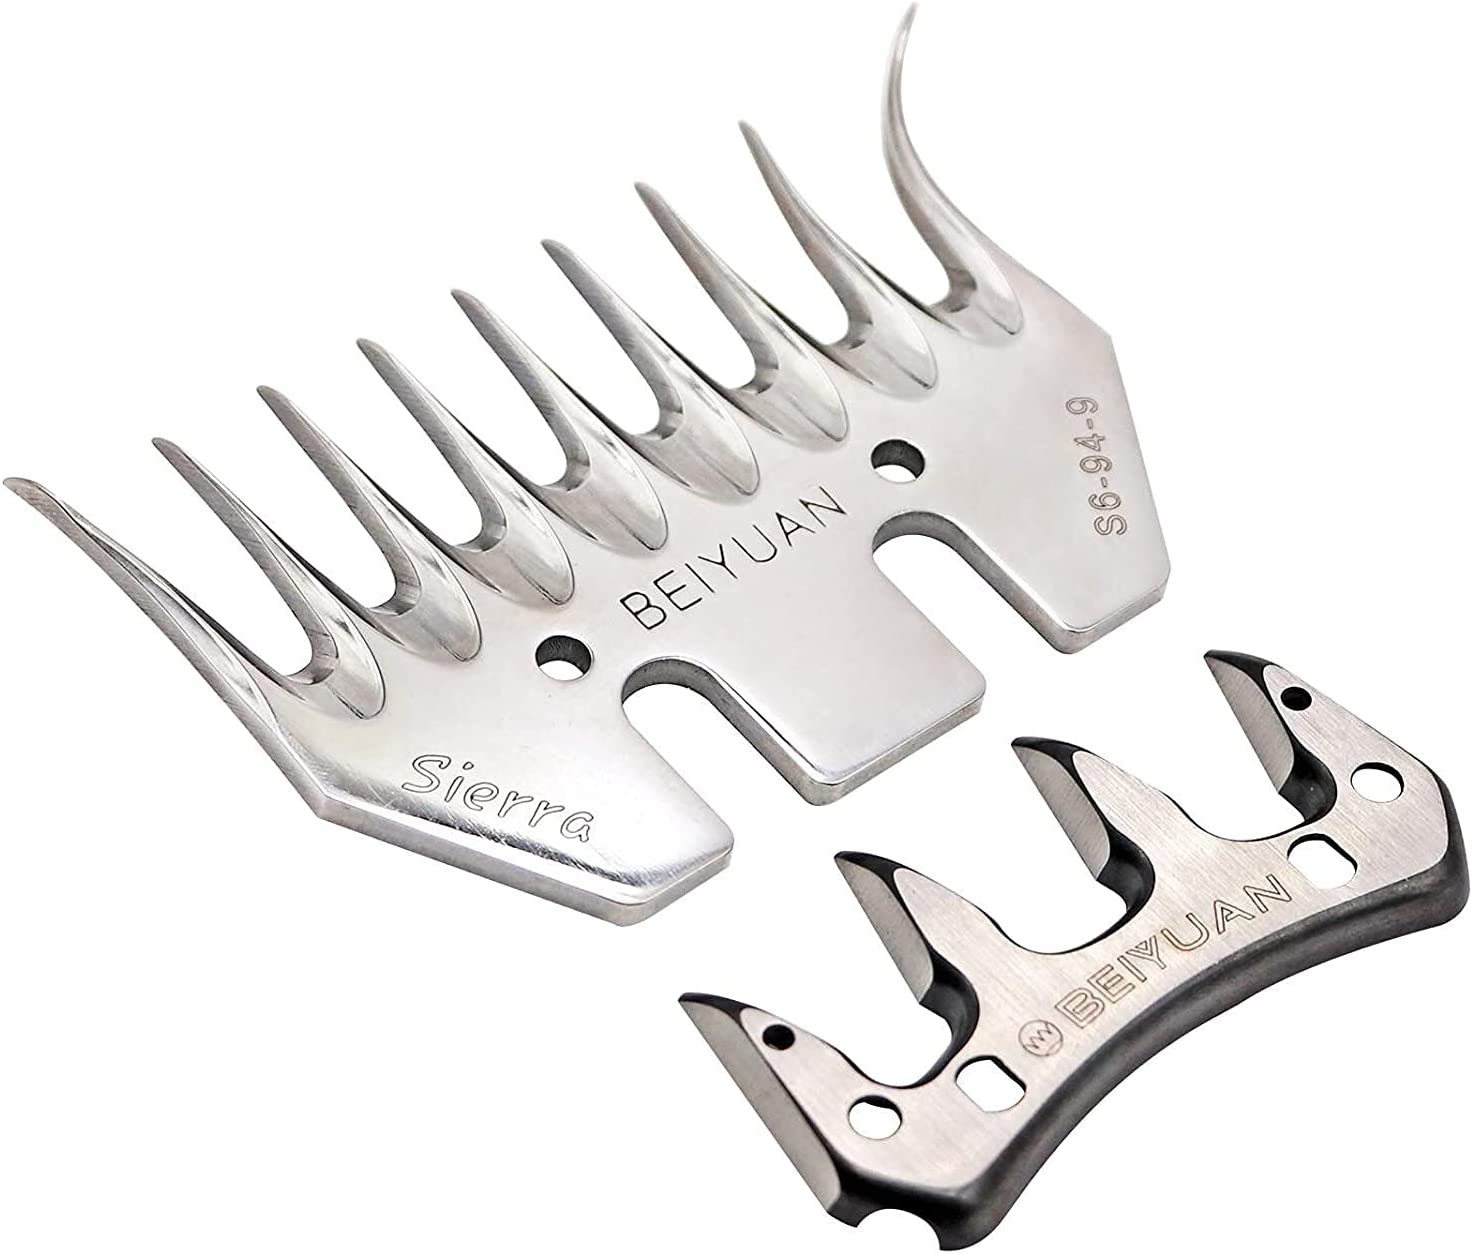 HSOSK Max 76% OFF Sheep Clippers 35% OFF Shearing Clip Kit Replacement Shears